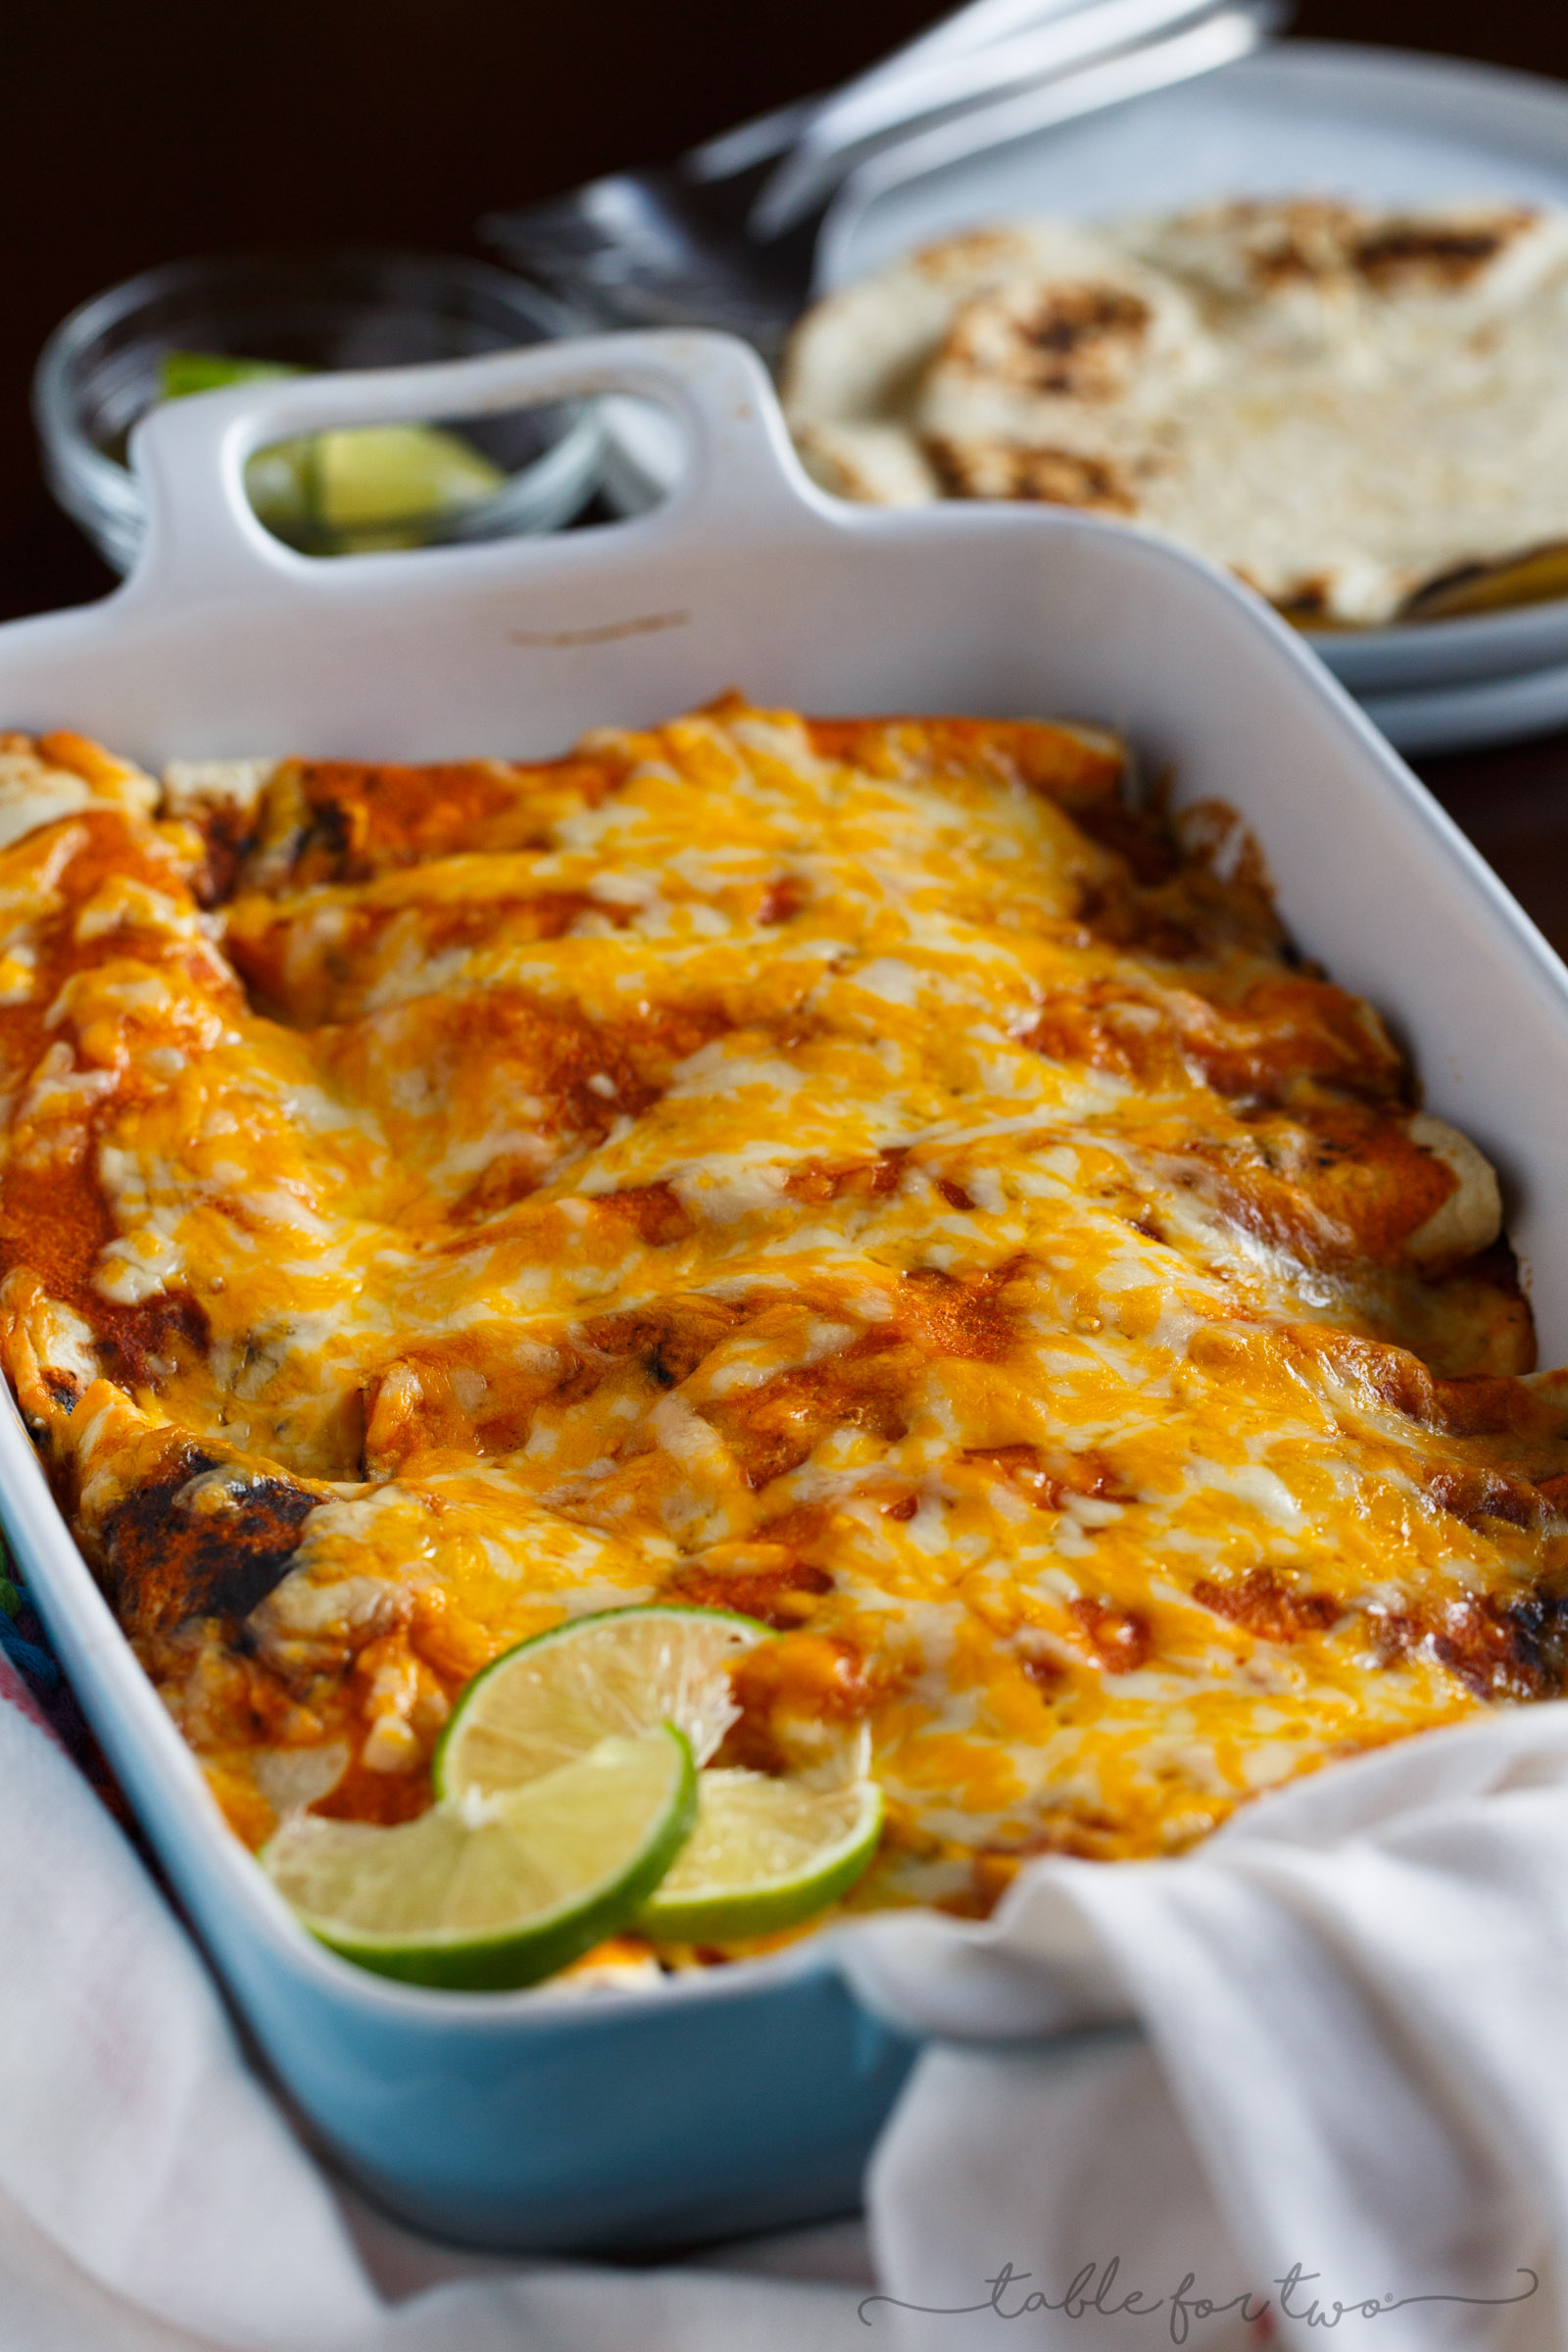 Homemade chicken enchiladas are a great comfort weeknight meal! Paired with a simple blender enchilada sauce, these will be a hit at the dinner table! #HuntsDifference #ad